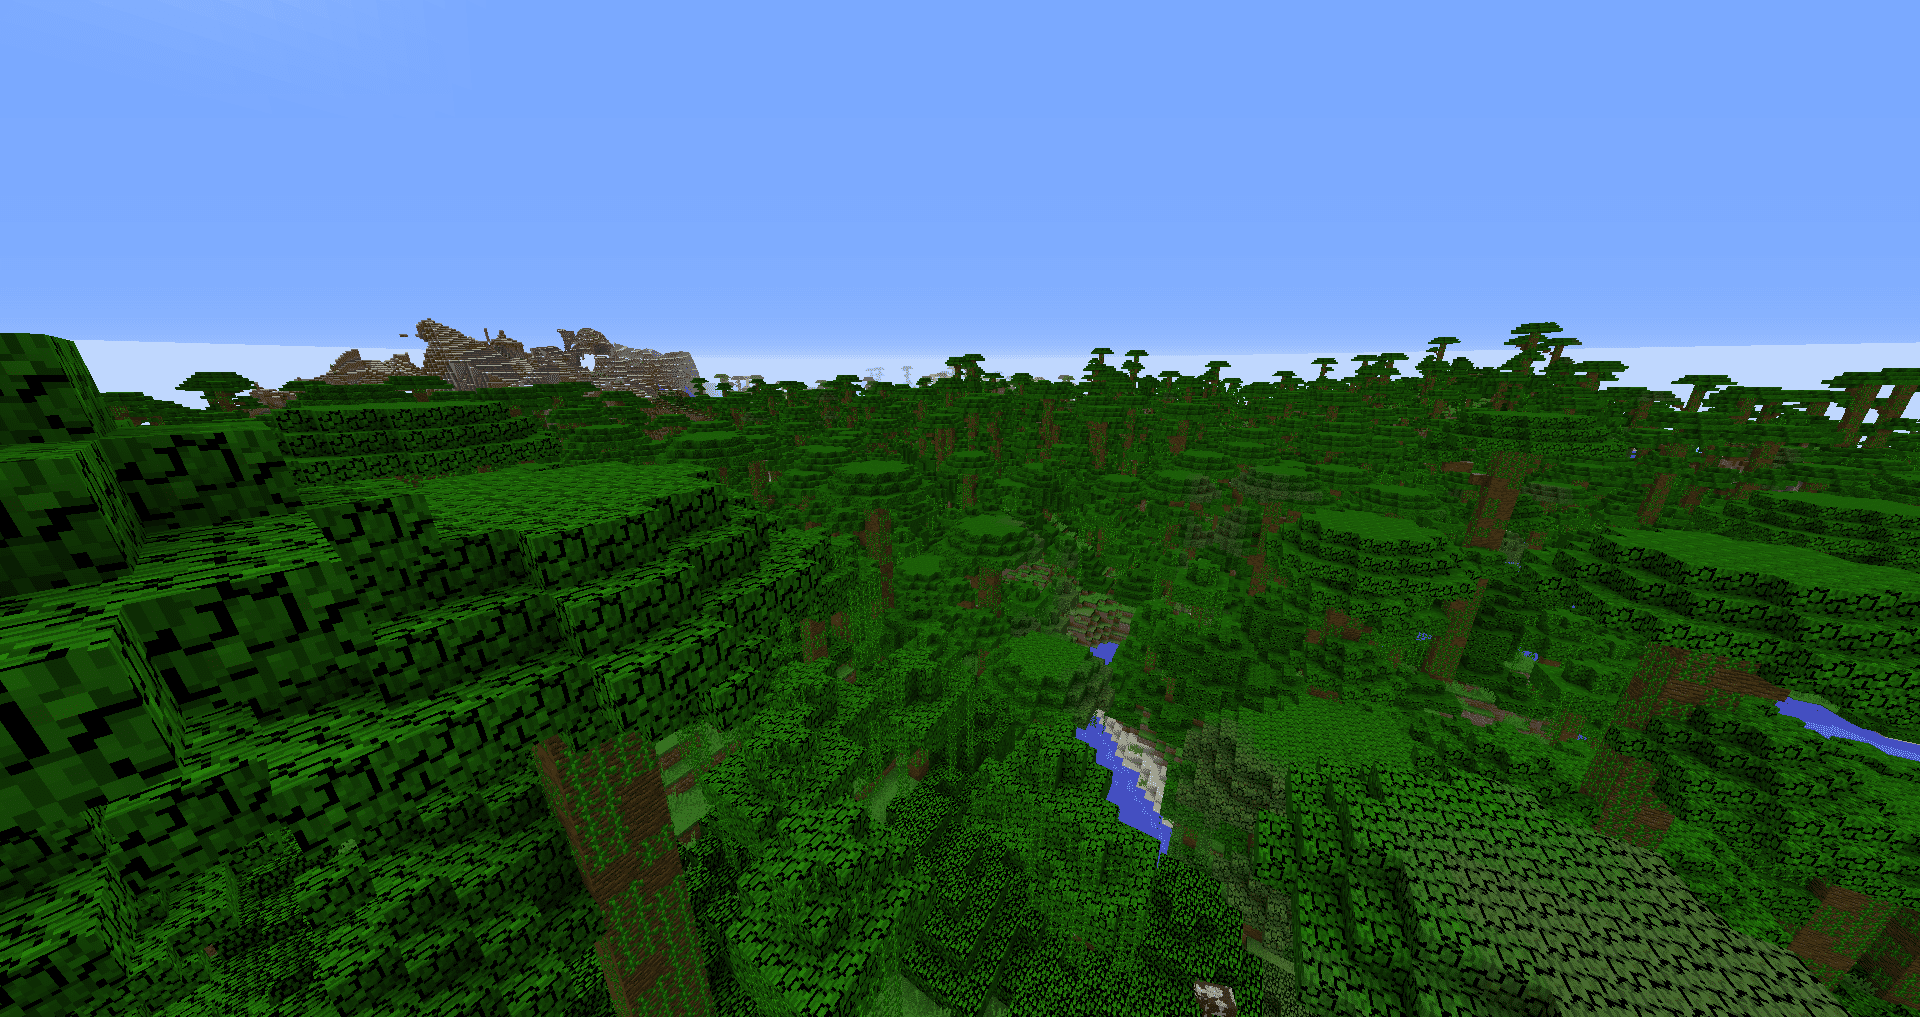 Minecraft Biomes Explained Jungle Biome